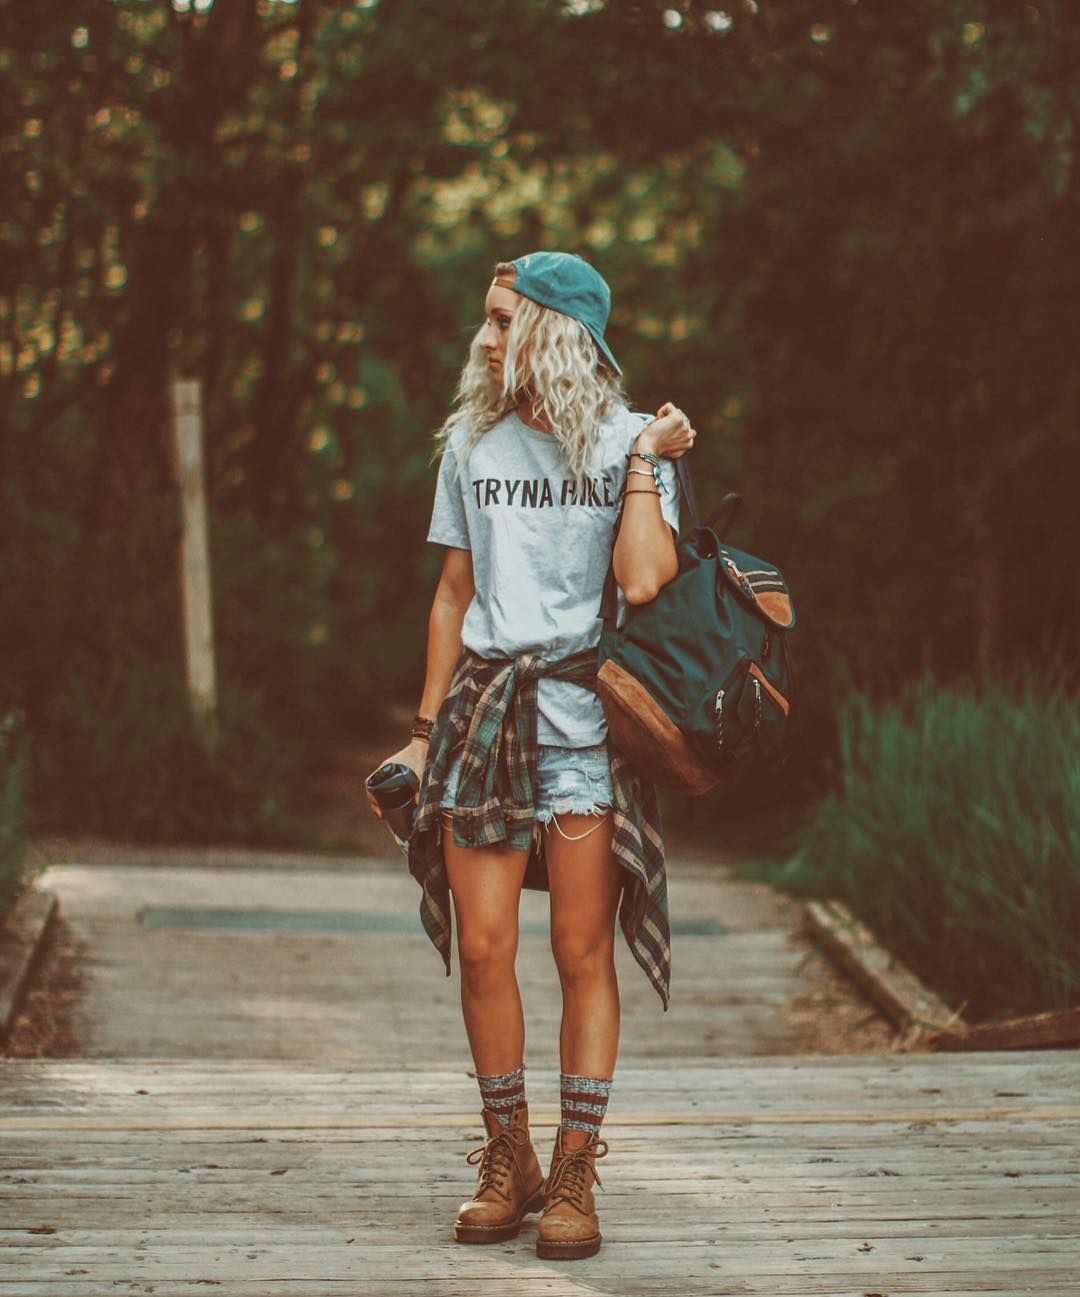 Summer camping outfit ideas, Hiking apparel